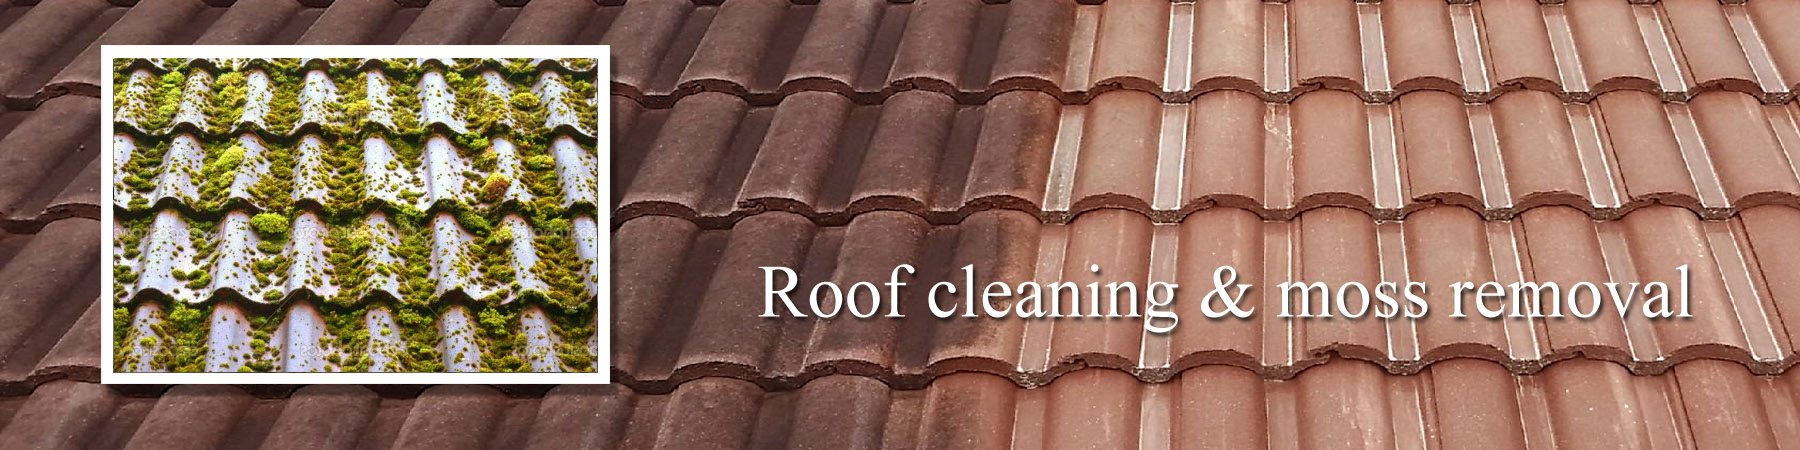 Roof cleaning Stevenage J R Cleaning